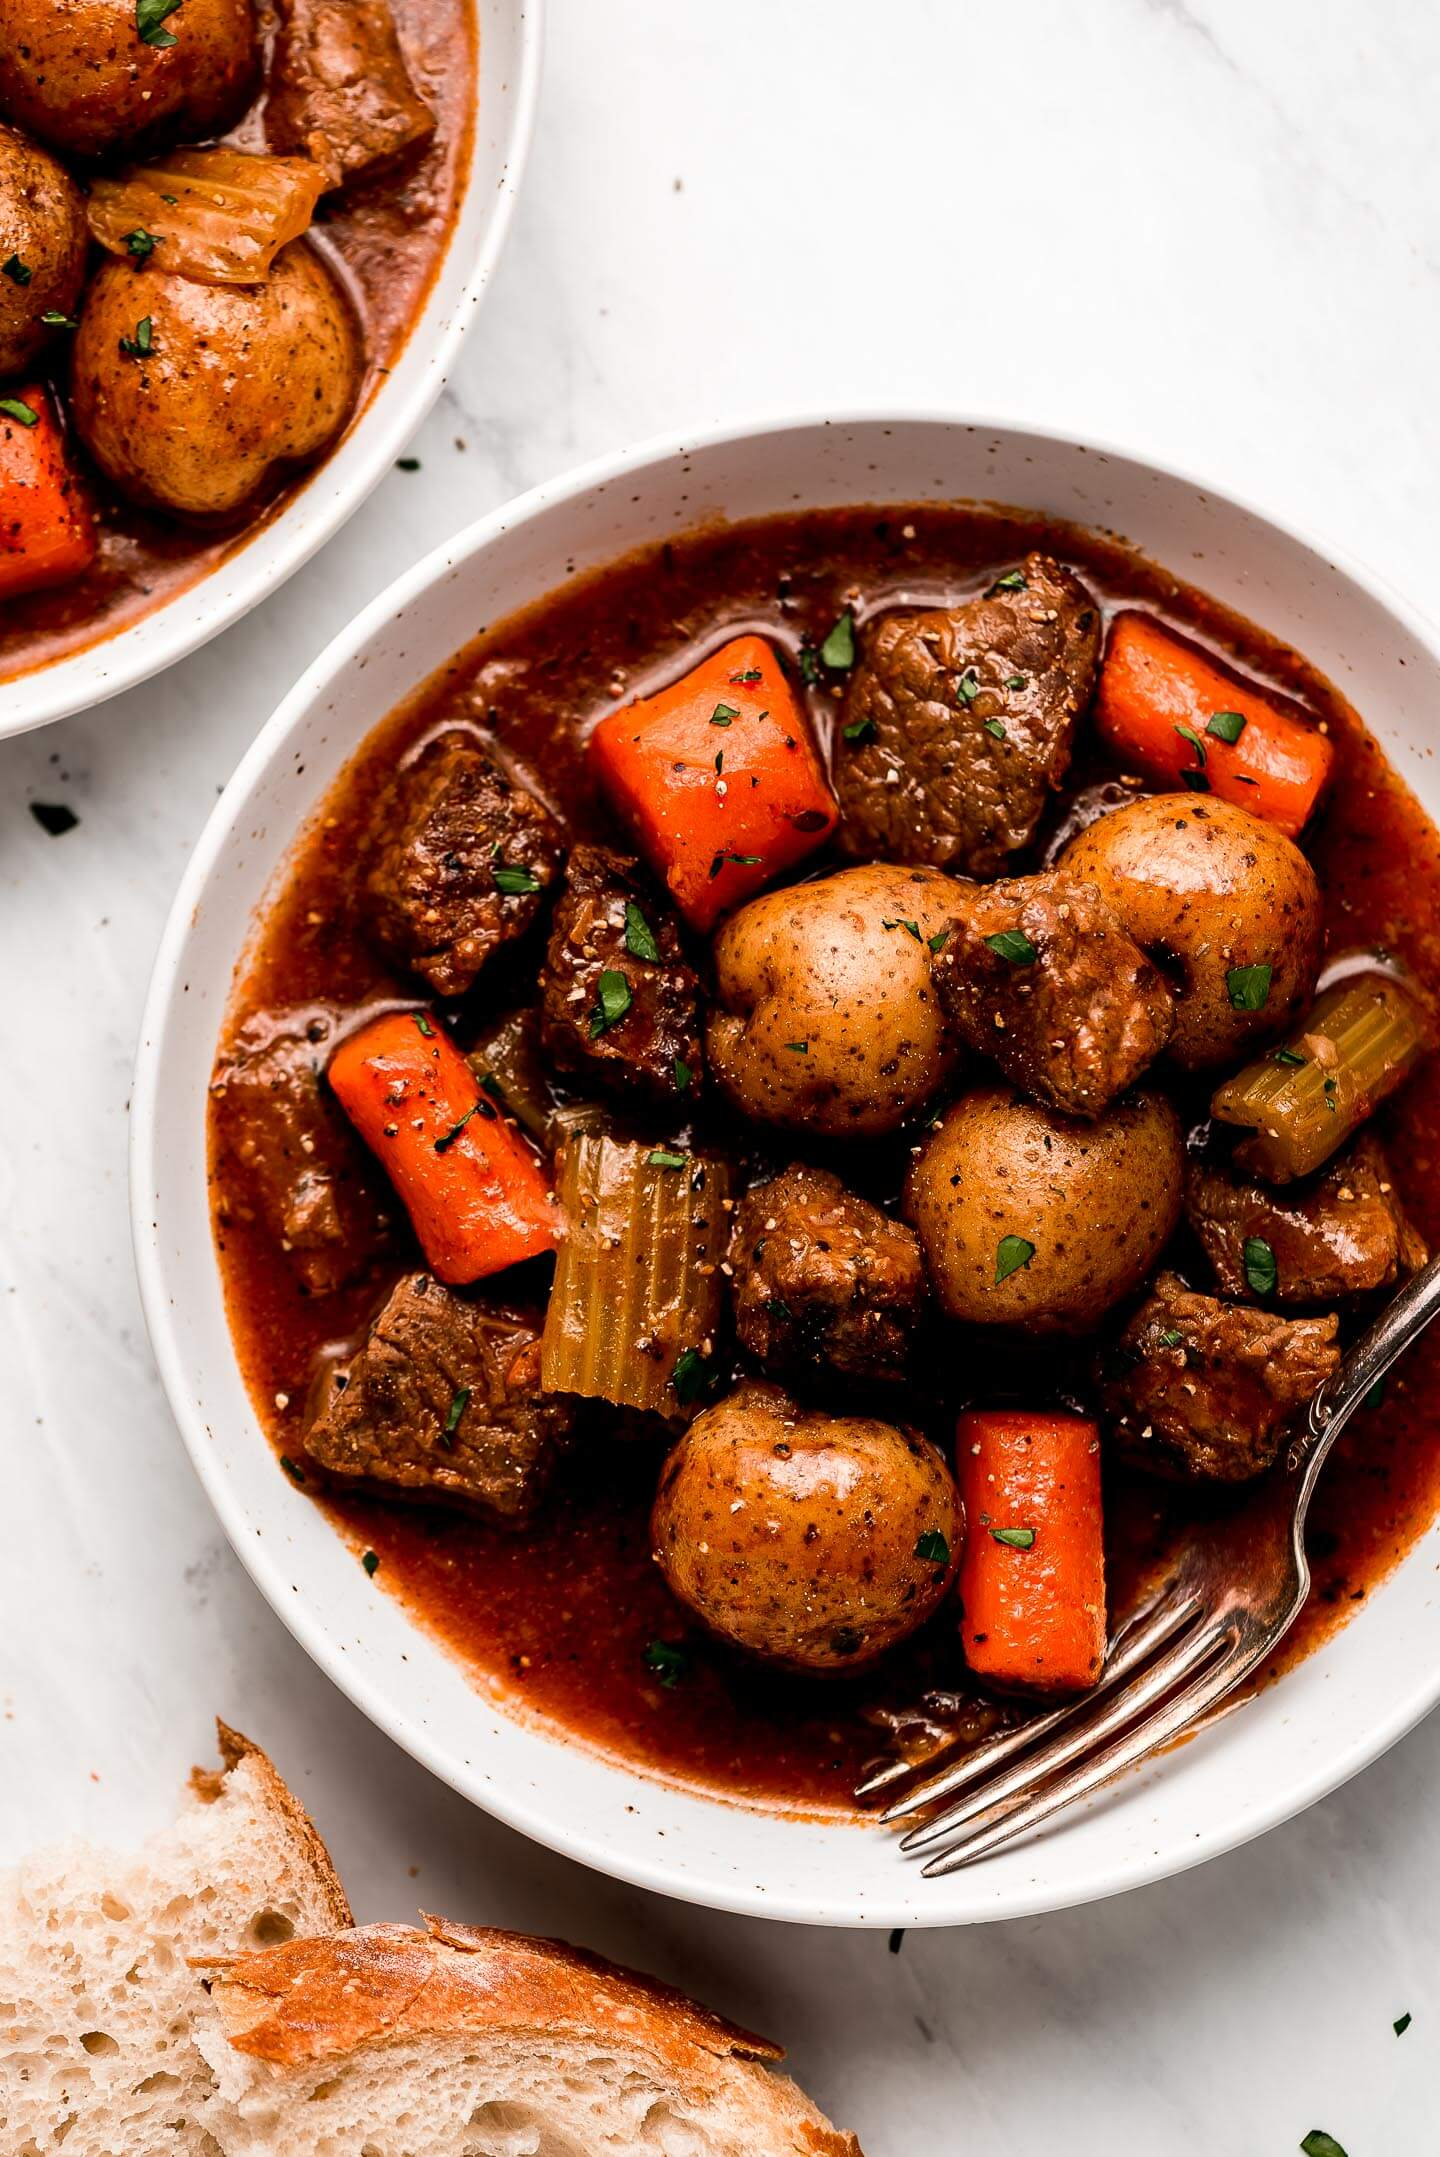 Two bowls of Beef Stew with bread to the side for dipping.